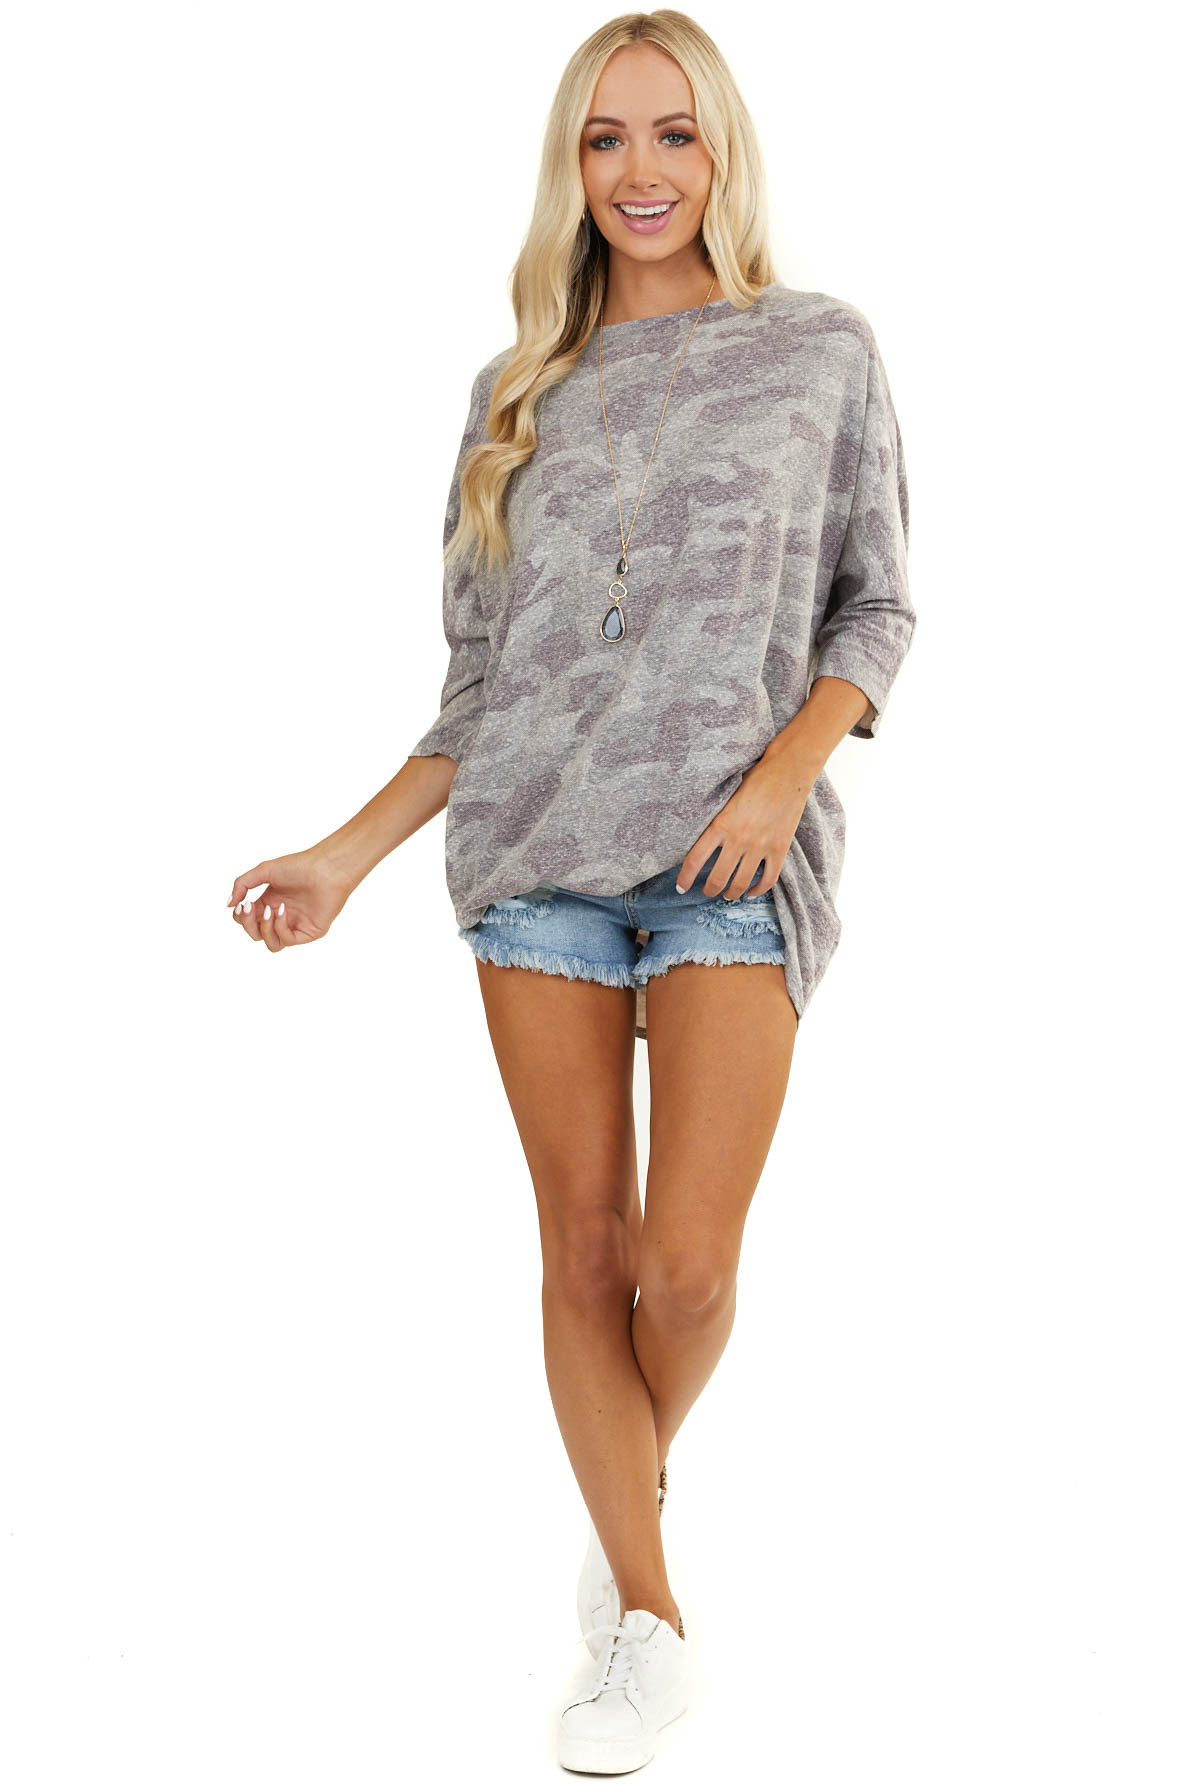 Heathered Olive Camo Print Top with 3/4 Length Sleeves